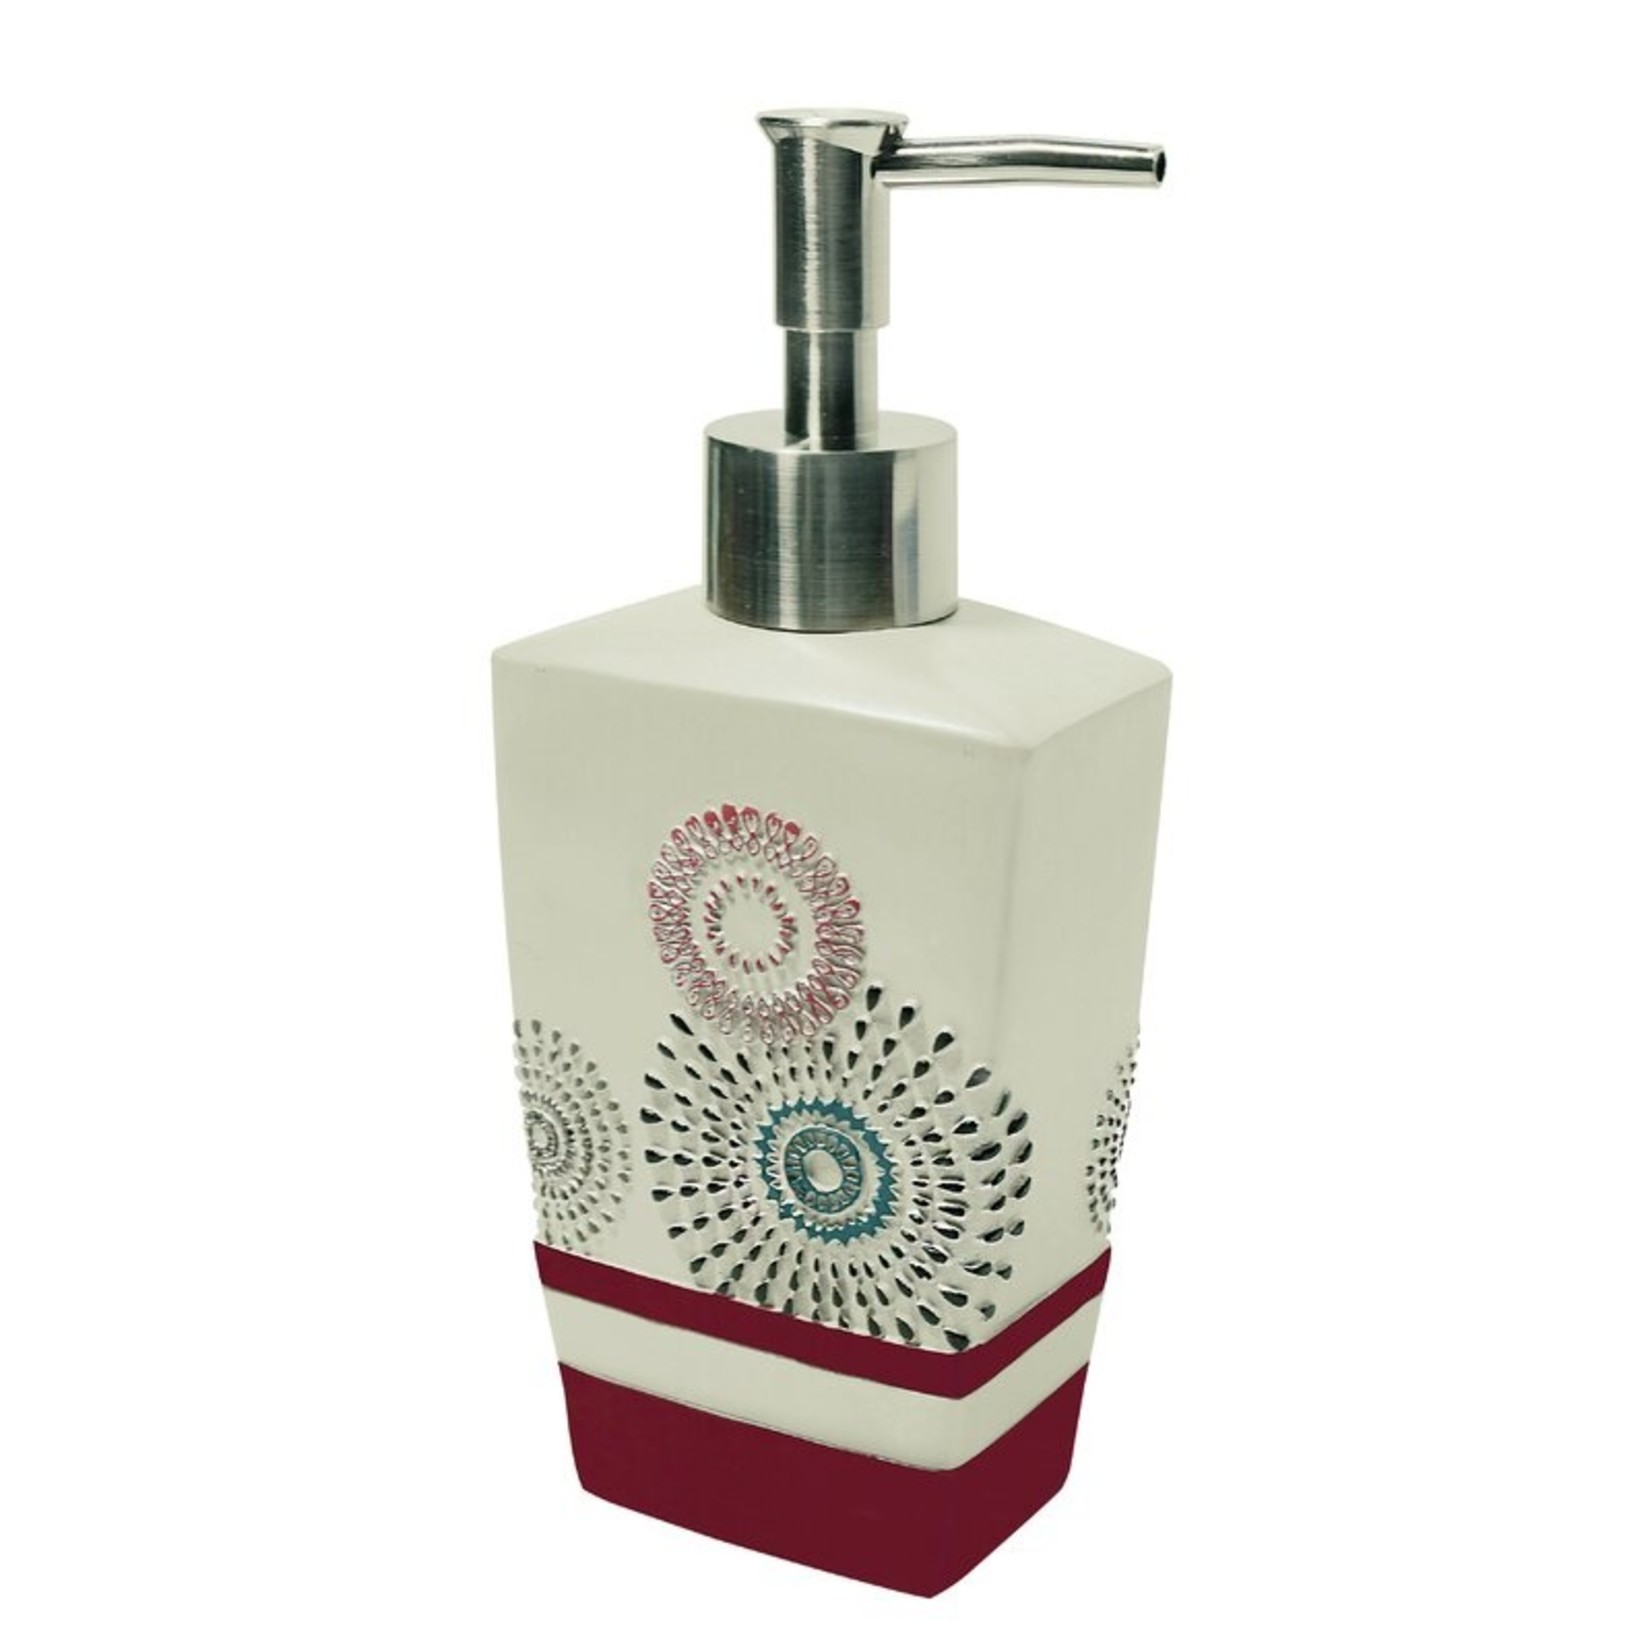 *Voegele Toothbrush Holder And Lotion Dispenser - Set of 2